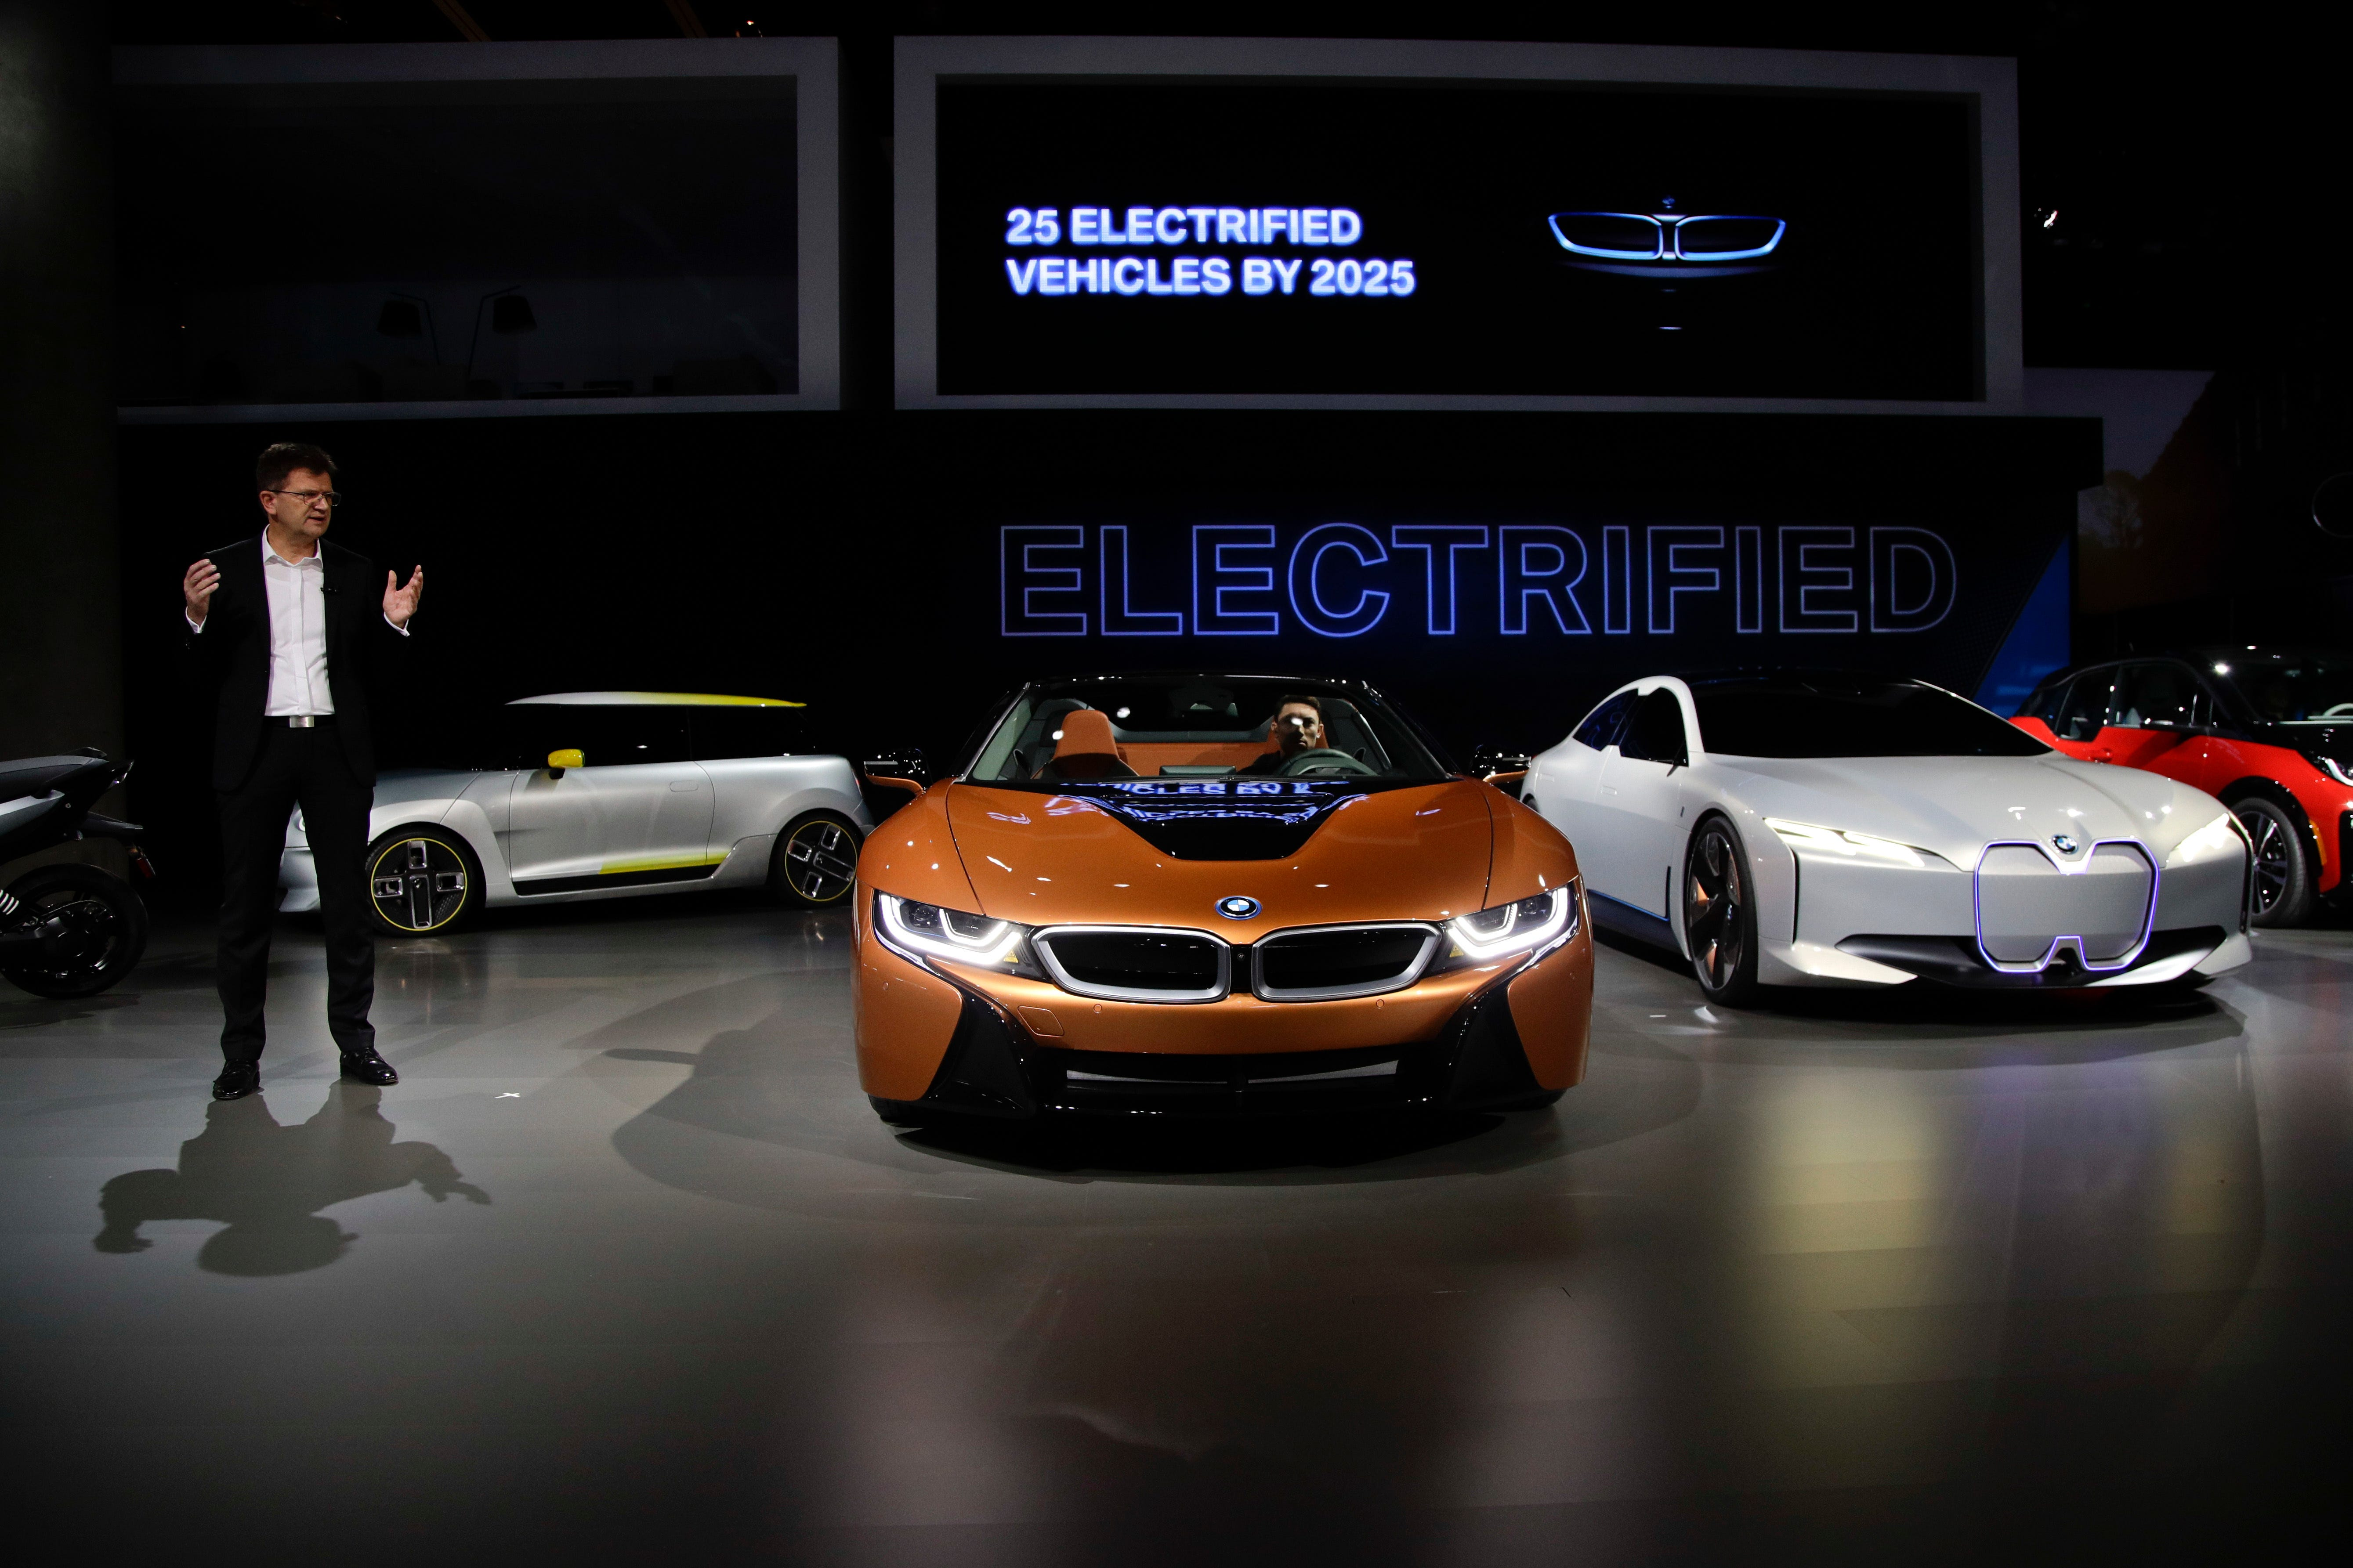 BMW's Klaus Frohlich introduces the BMW i8 Roadster,